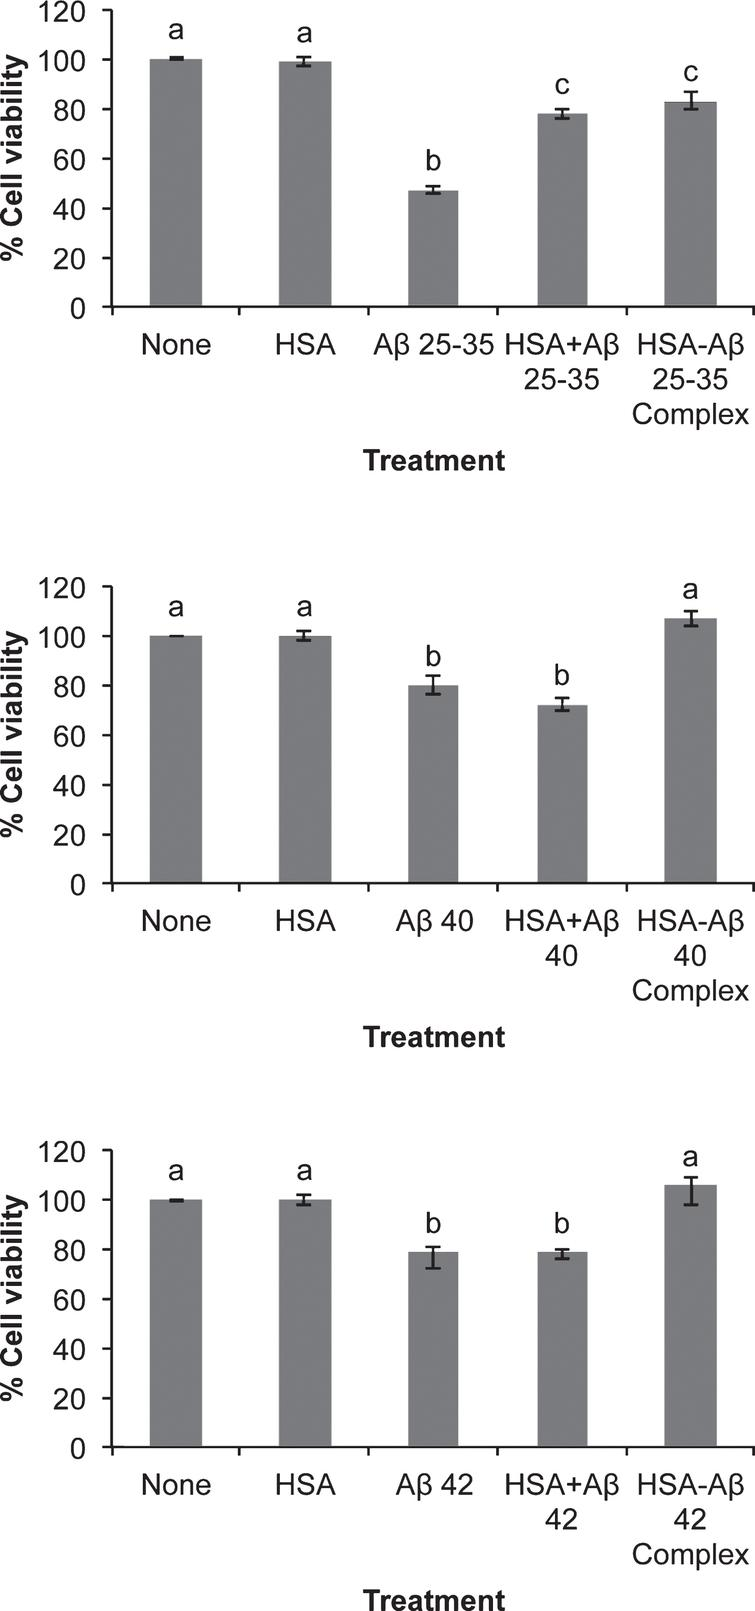 Effect of amyloid-beta peptides on cell viability in the absence or the presence of HSA. Neurons in primary culture (3 DIV) were incubated for 20 h in Hanks medium with three different Aβ peptides: Aβ25-35, Aβ40, or Aβ42 (30 μM) in the absence or the presence of human serum albumin (HSA; 30 μM) or as HSA-Aβ complexes (30 μM). Results are expressed as percentages compared to non-treated cells and are means±SEM (n≥6). One-way ANOVA and Tukey Test were applied in order to compare different groups. Distinct characters are used to indicate statistically different groups (p<0.05).